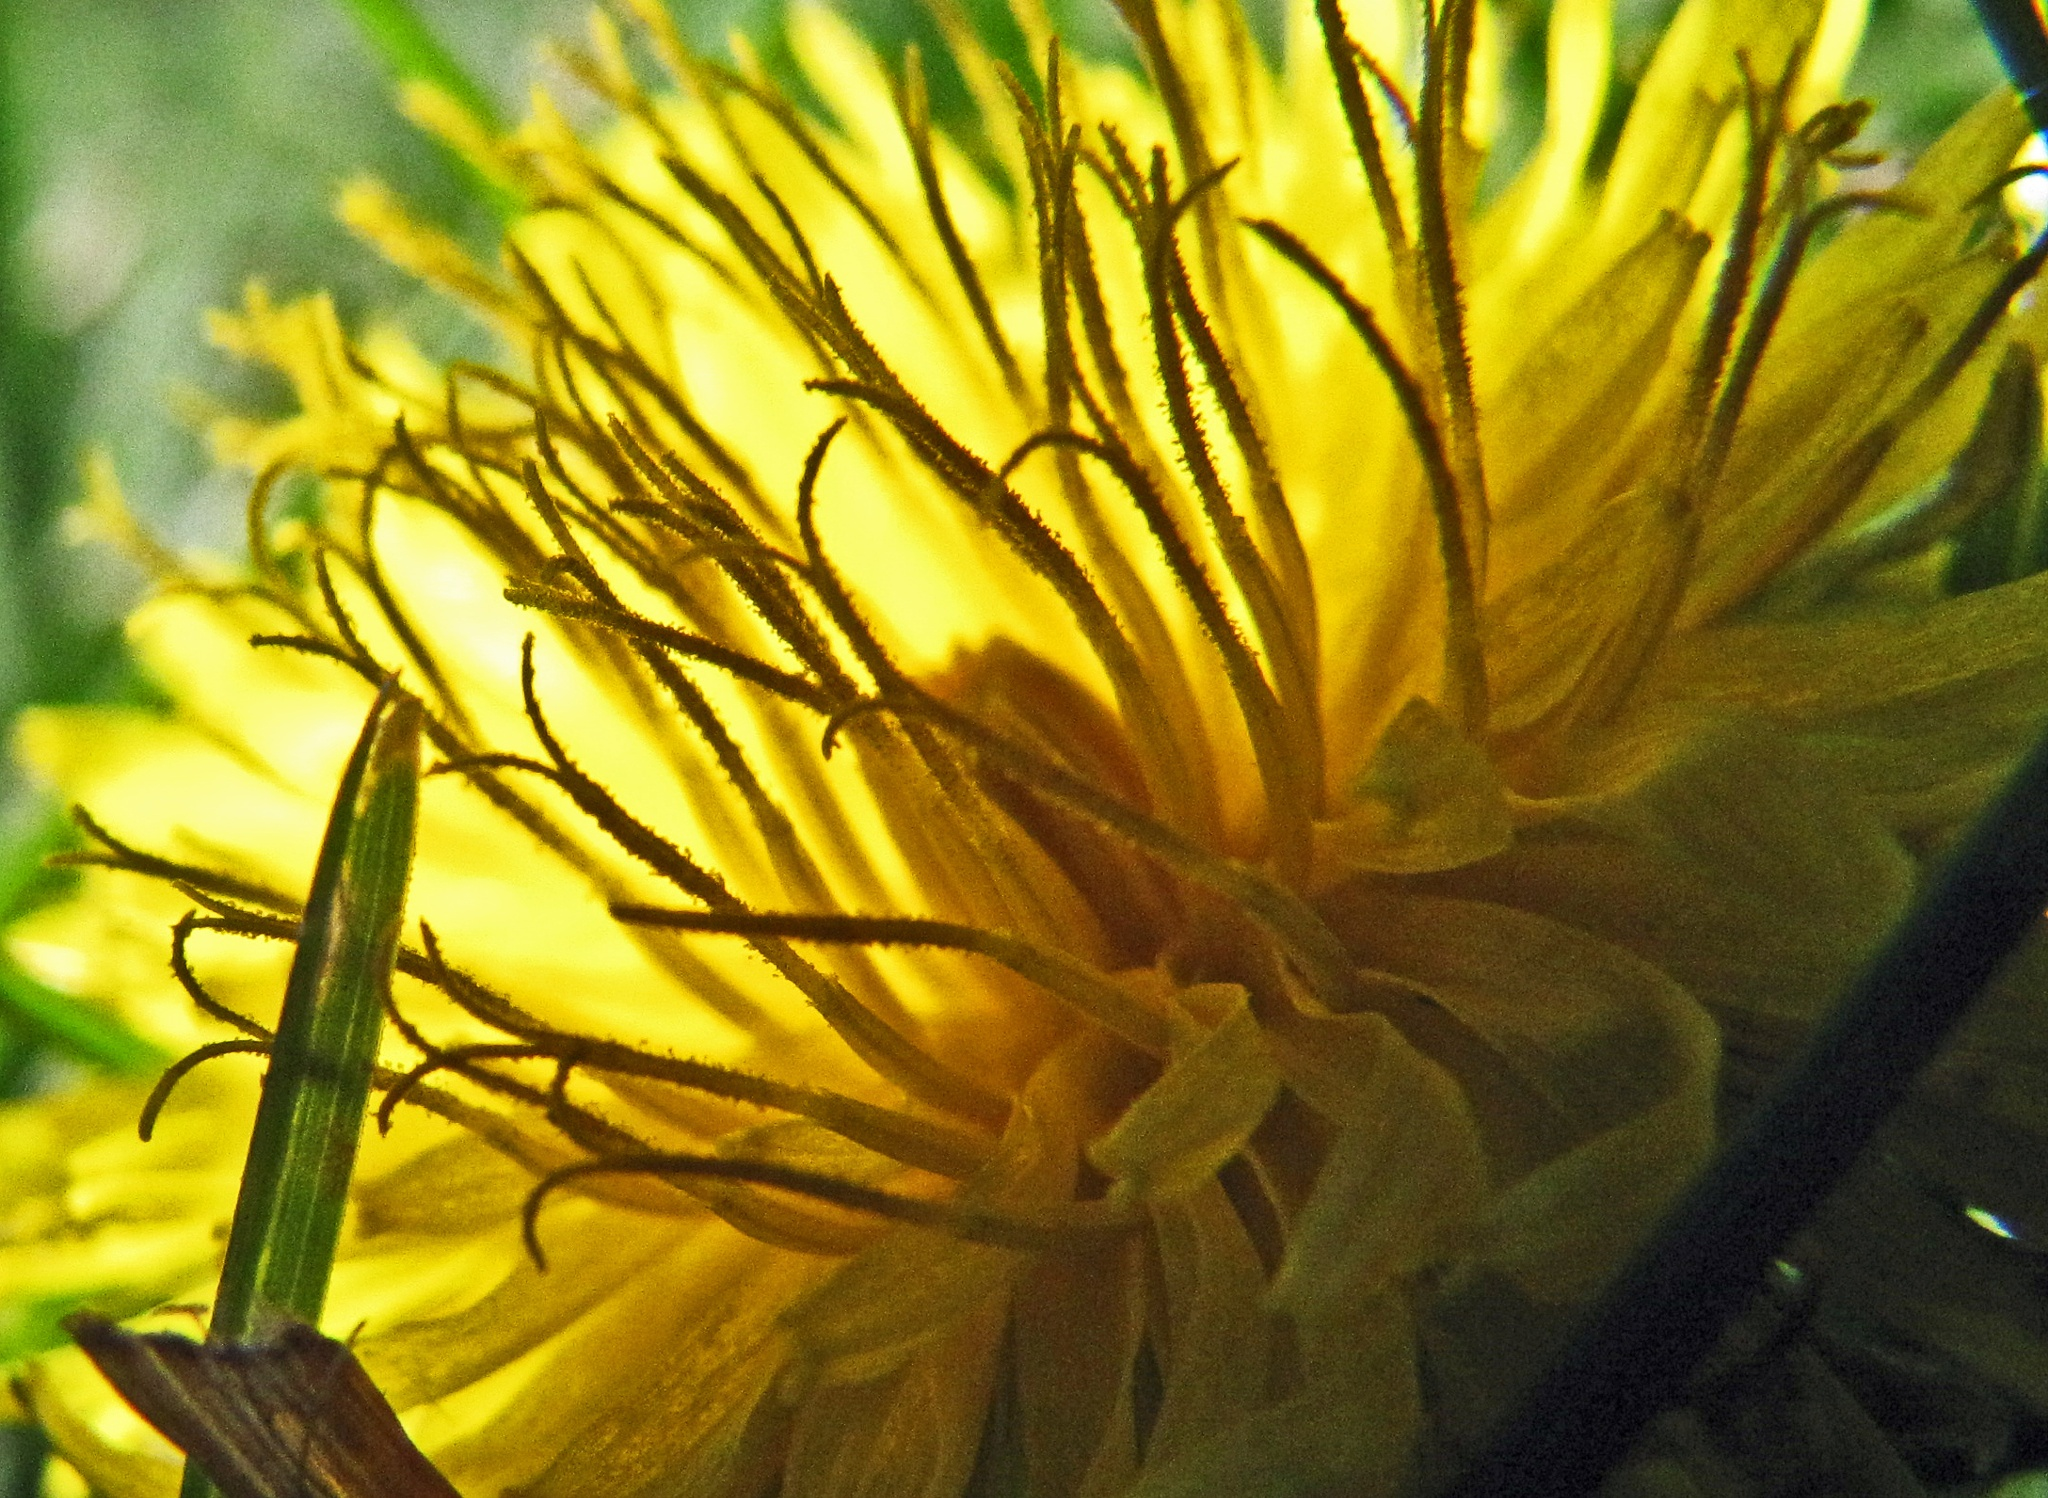 Glowing Dandelion Among the Blades of Grass by James R McWilliams